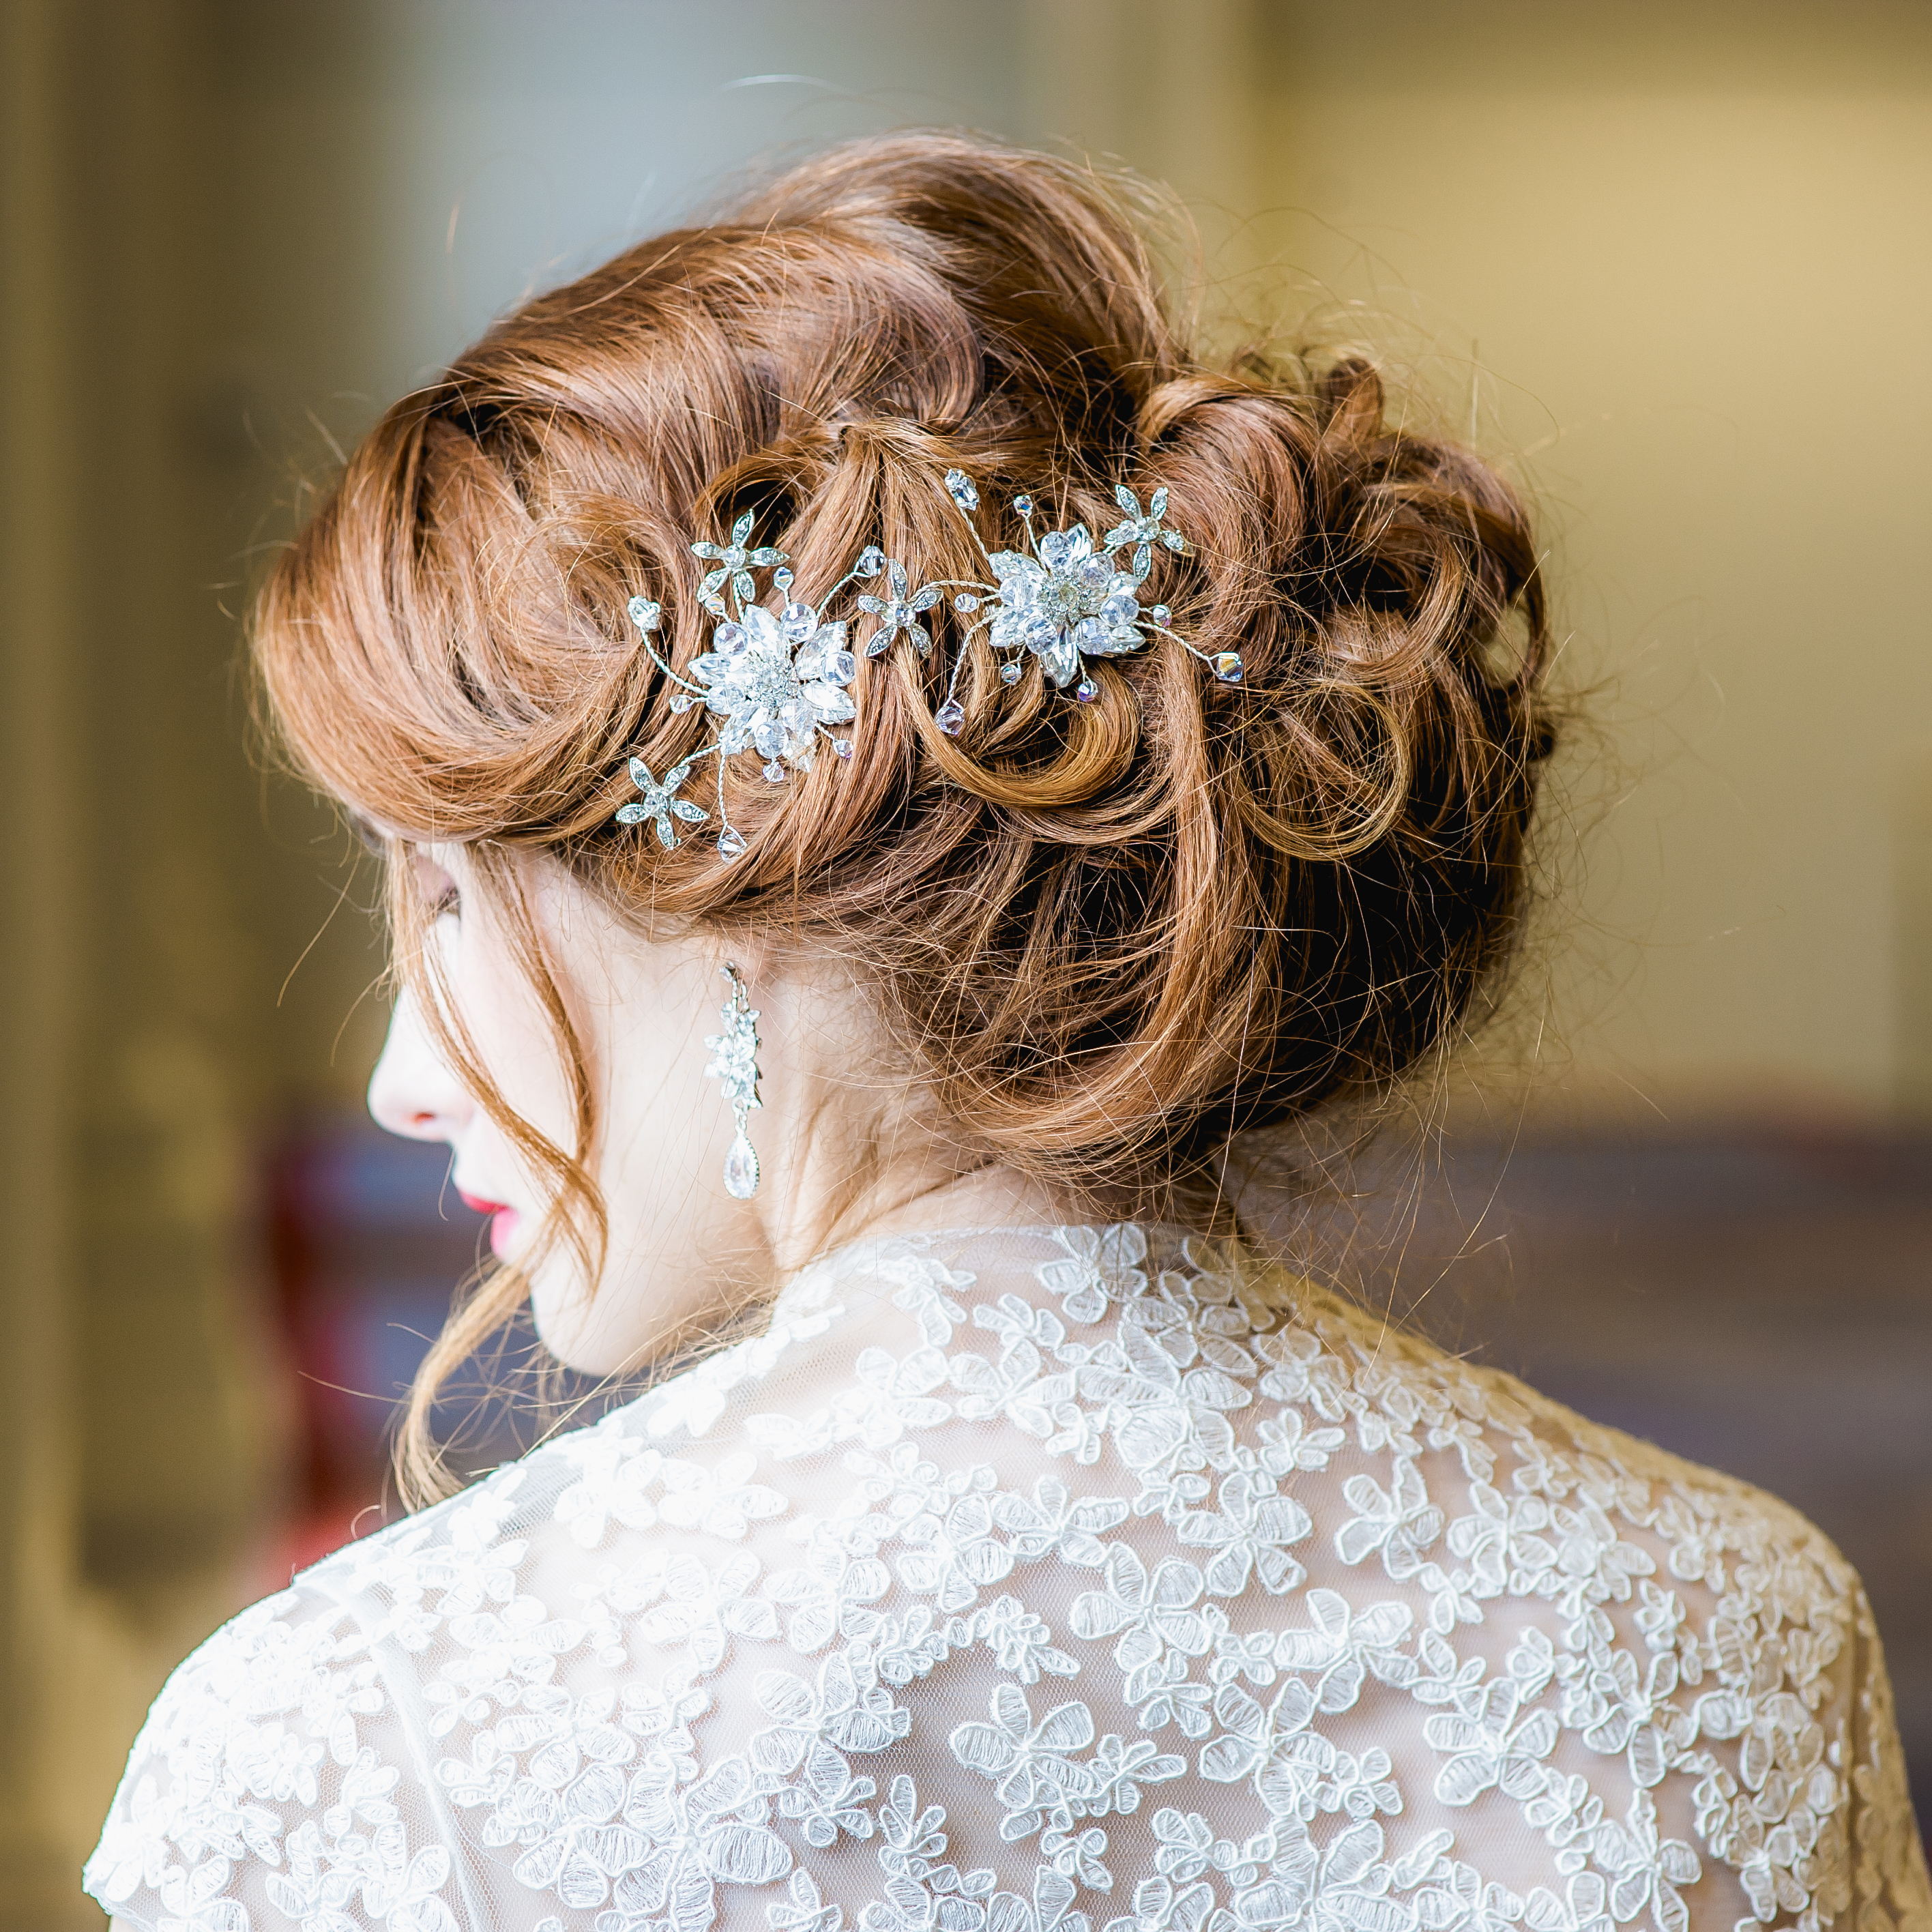 2 crystal flower hair combs on red haired bride